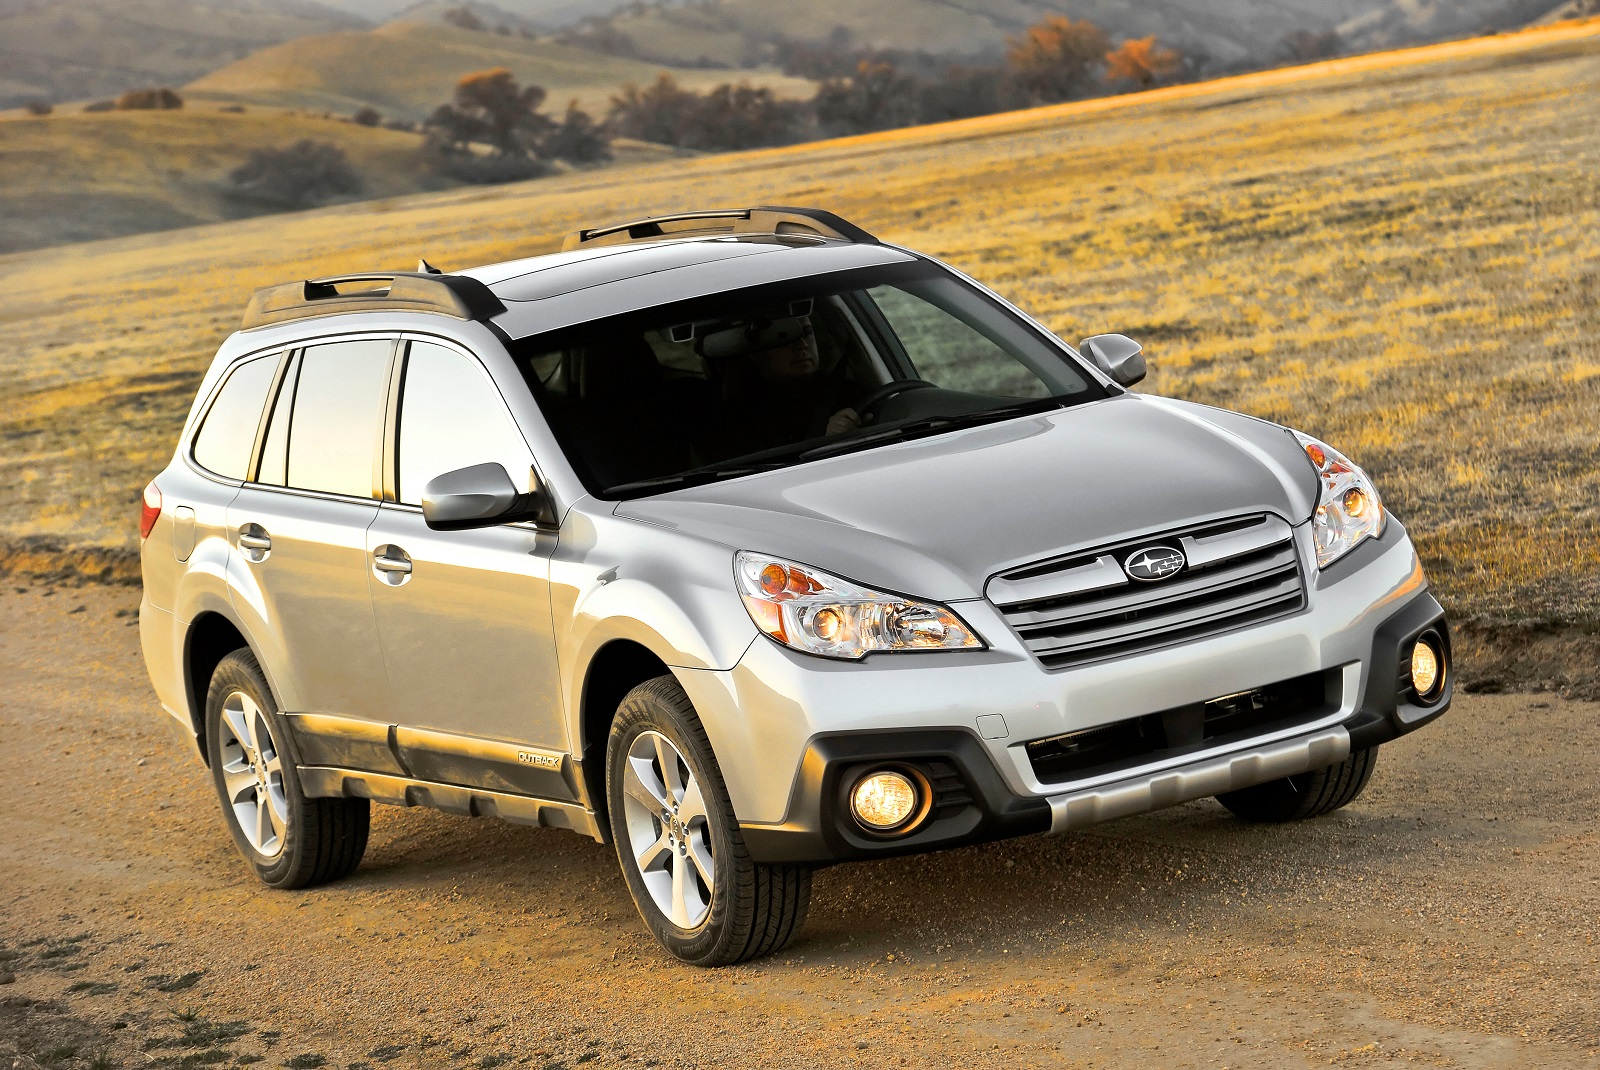 Nearly 600 000 Subaru Legacy Outback Vehicles Recalled For Potential Fire Hazard